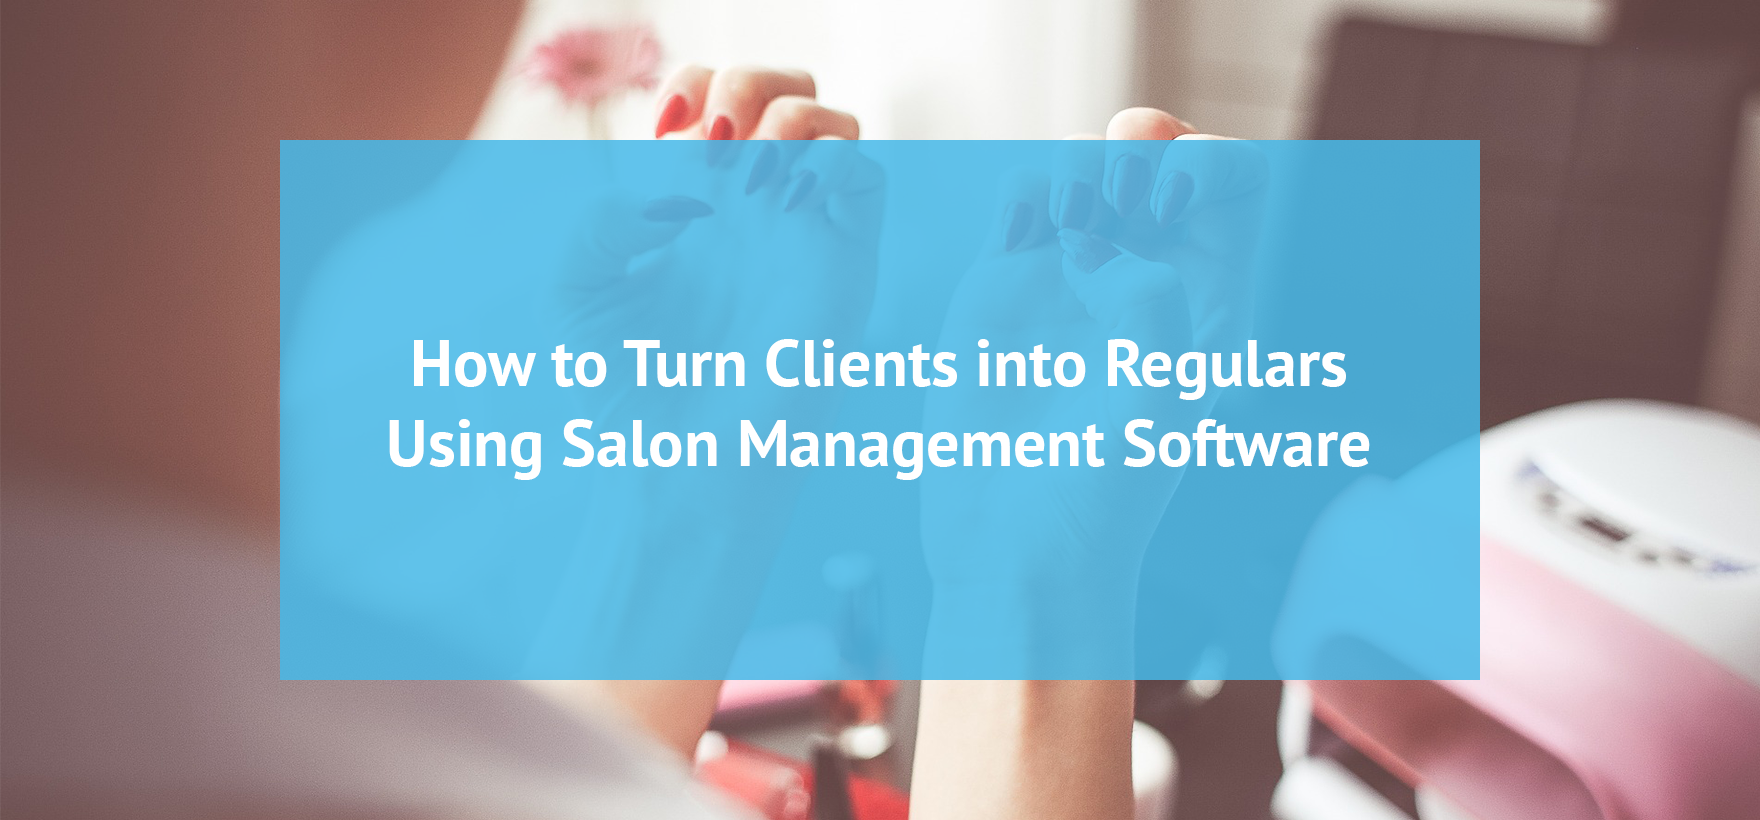 New Clients: How to Retain and Turn Them into Regulars Using Salon Management Software